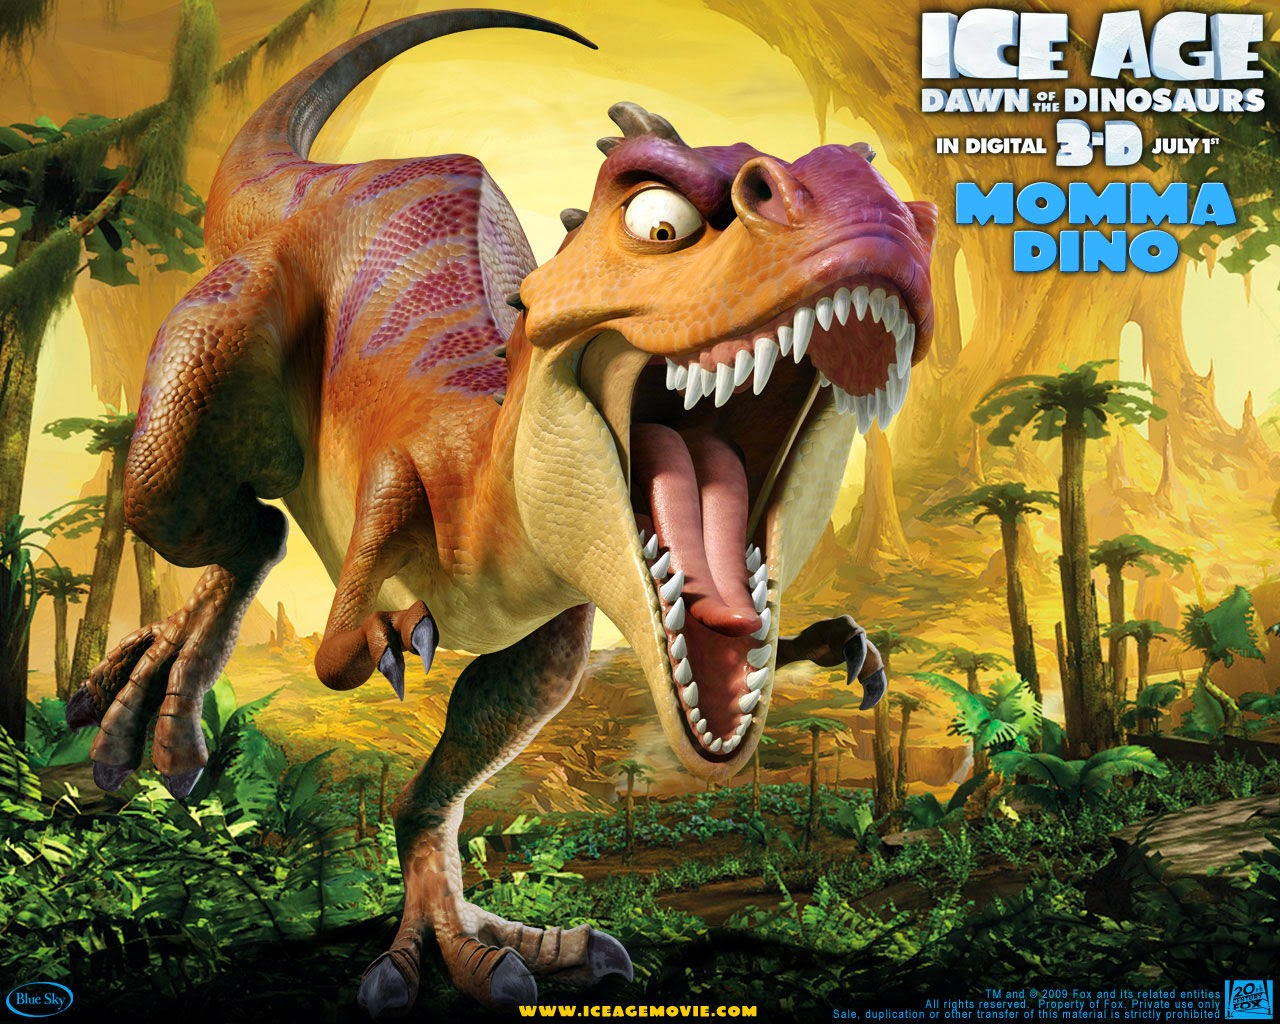 Ice Age Dawn of the Dinosaurs animatefilmreviews.filminspector.com